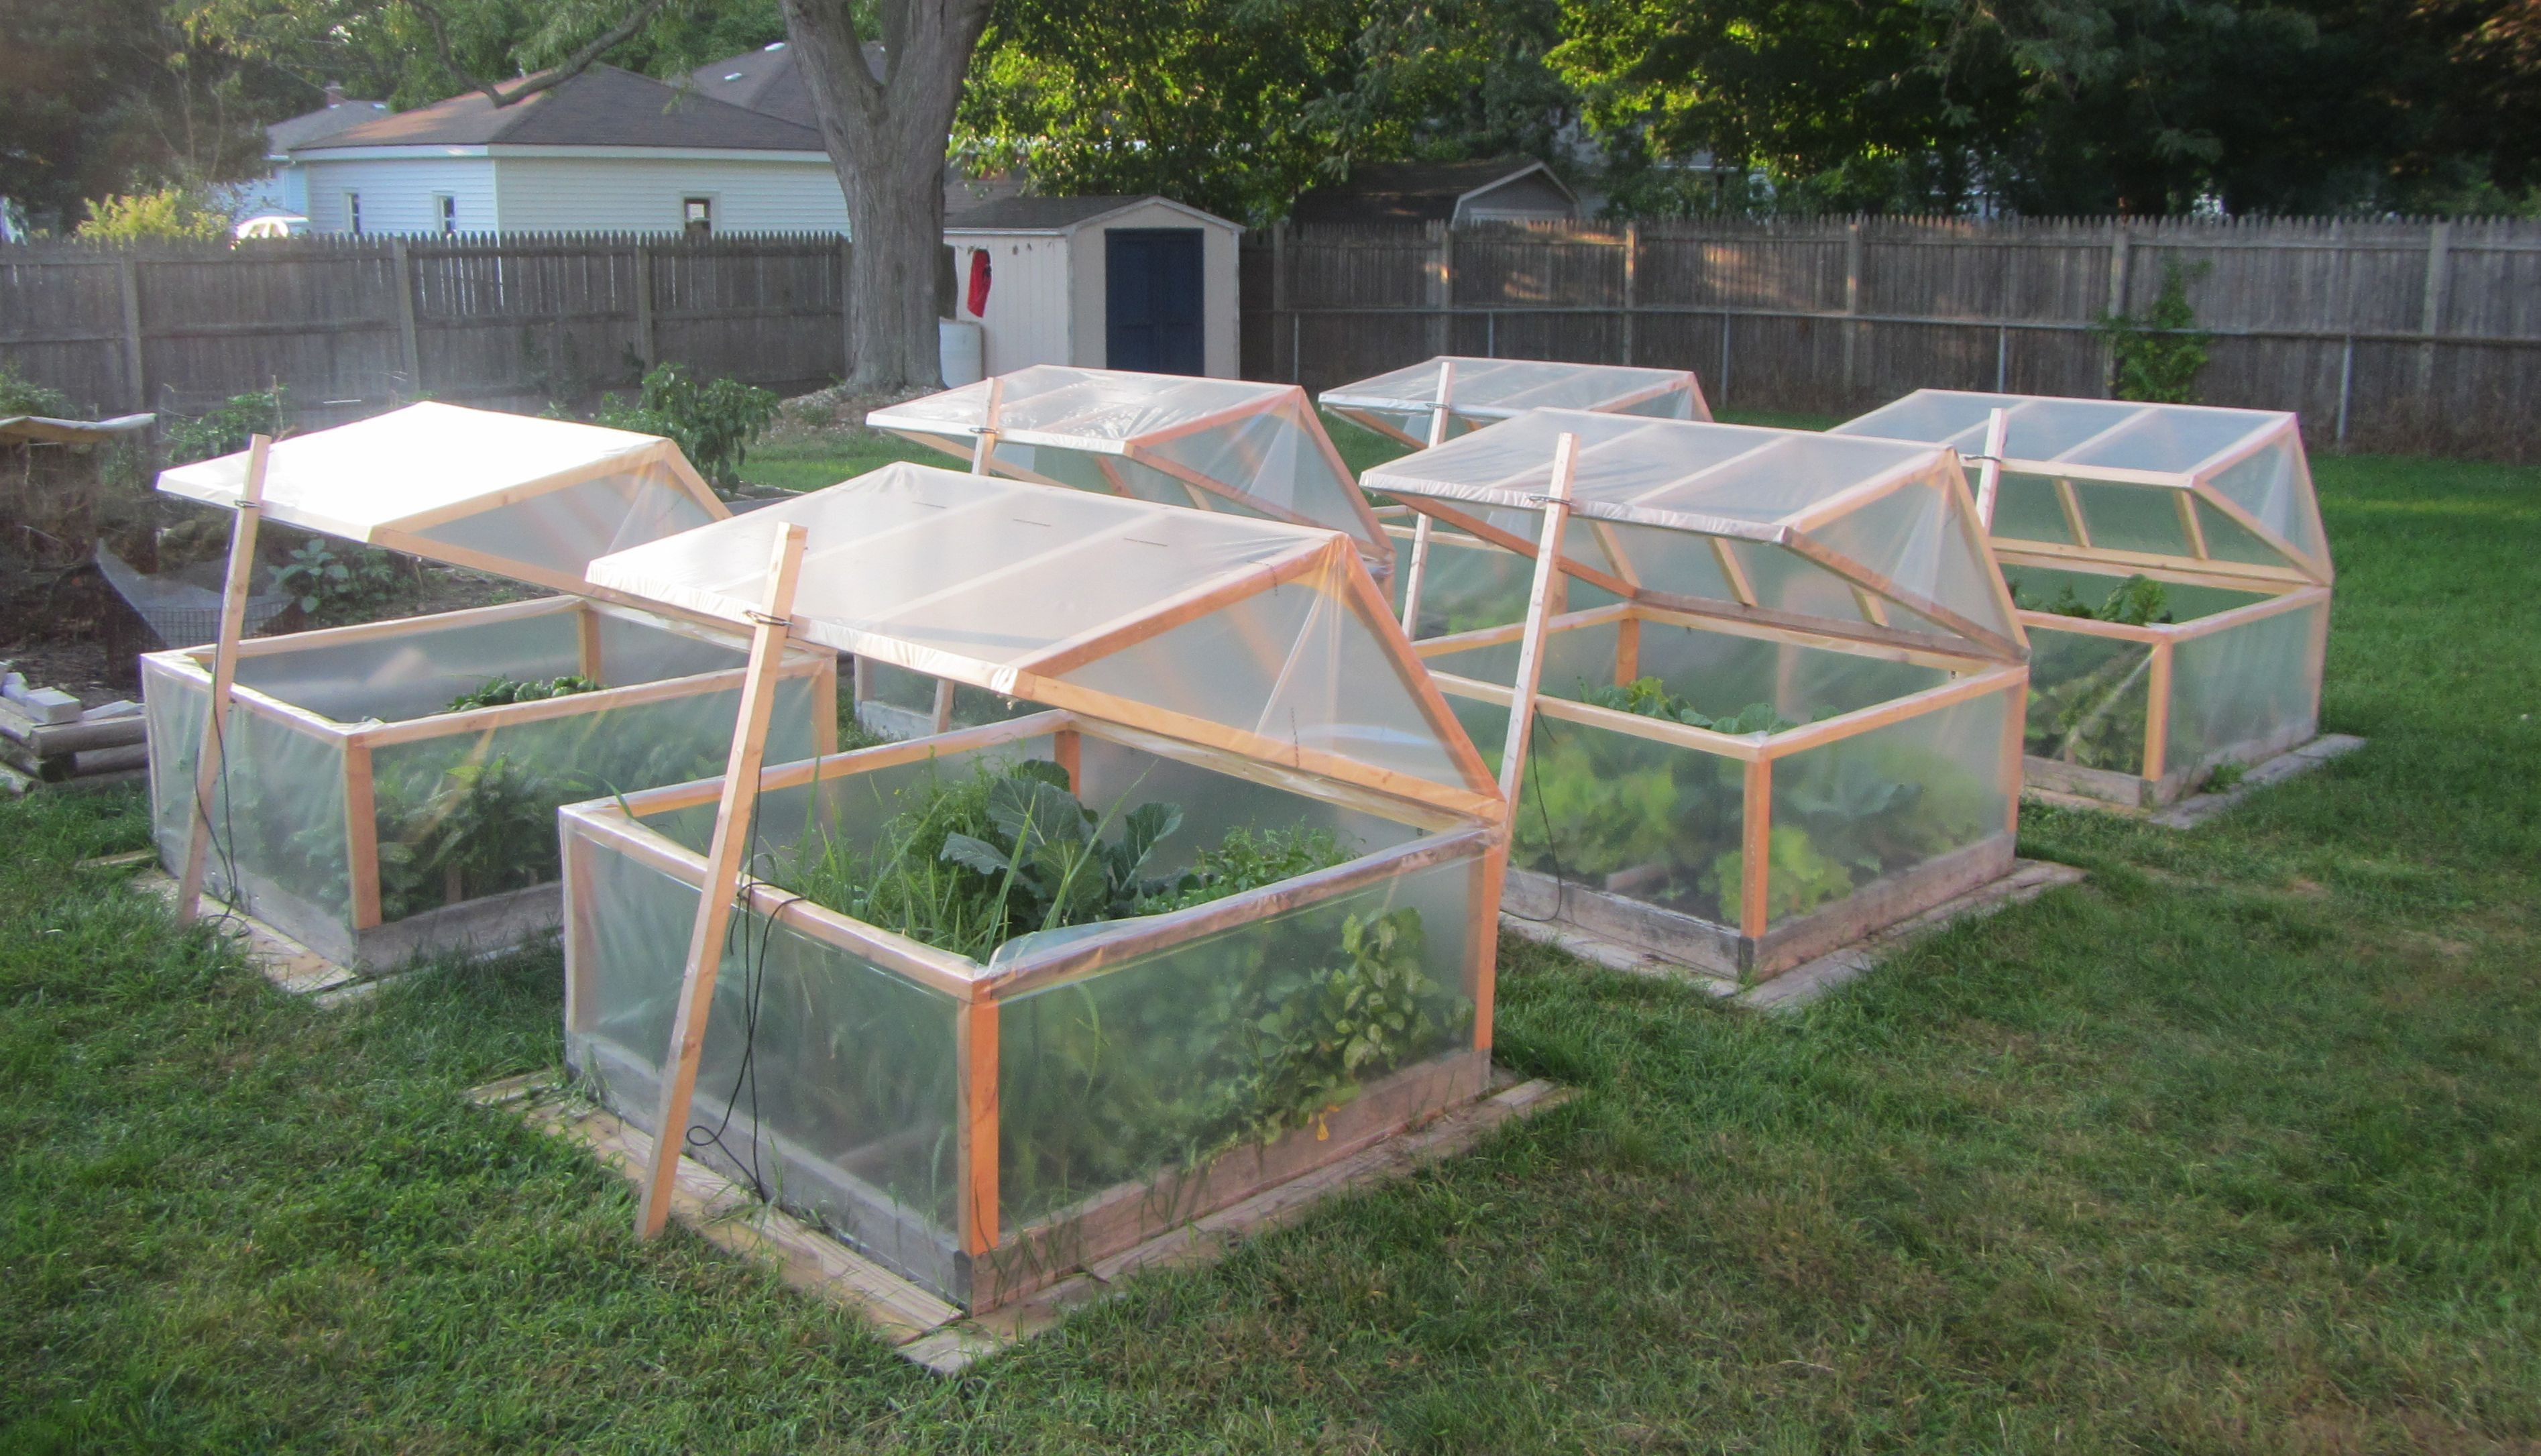 These are my mini greenhouses for winter gardening. They open for venting; they close for protection. They open all the way for easy harvest. High walls allow plenty of room for taller plants. Pitched roofs will shed snow in the Michigan winter. I built six of them. The garden is ready for winter!! I love fall gardening. It's the best time of year. All harvest, no work and no weeds! :) #gardendesign #wintergardening